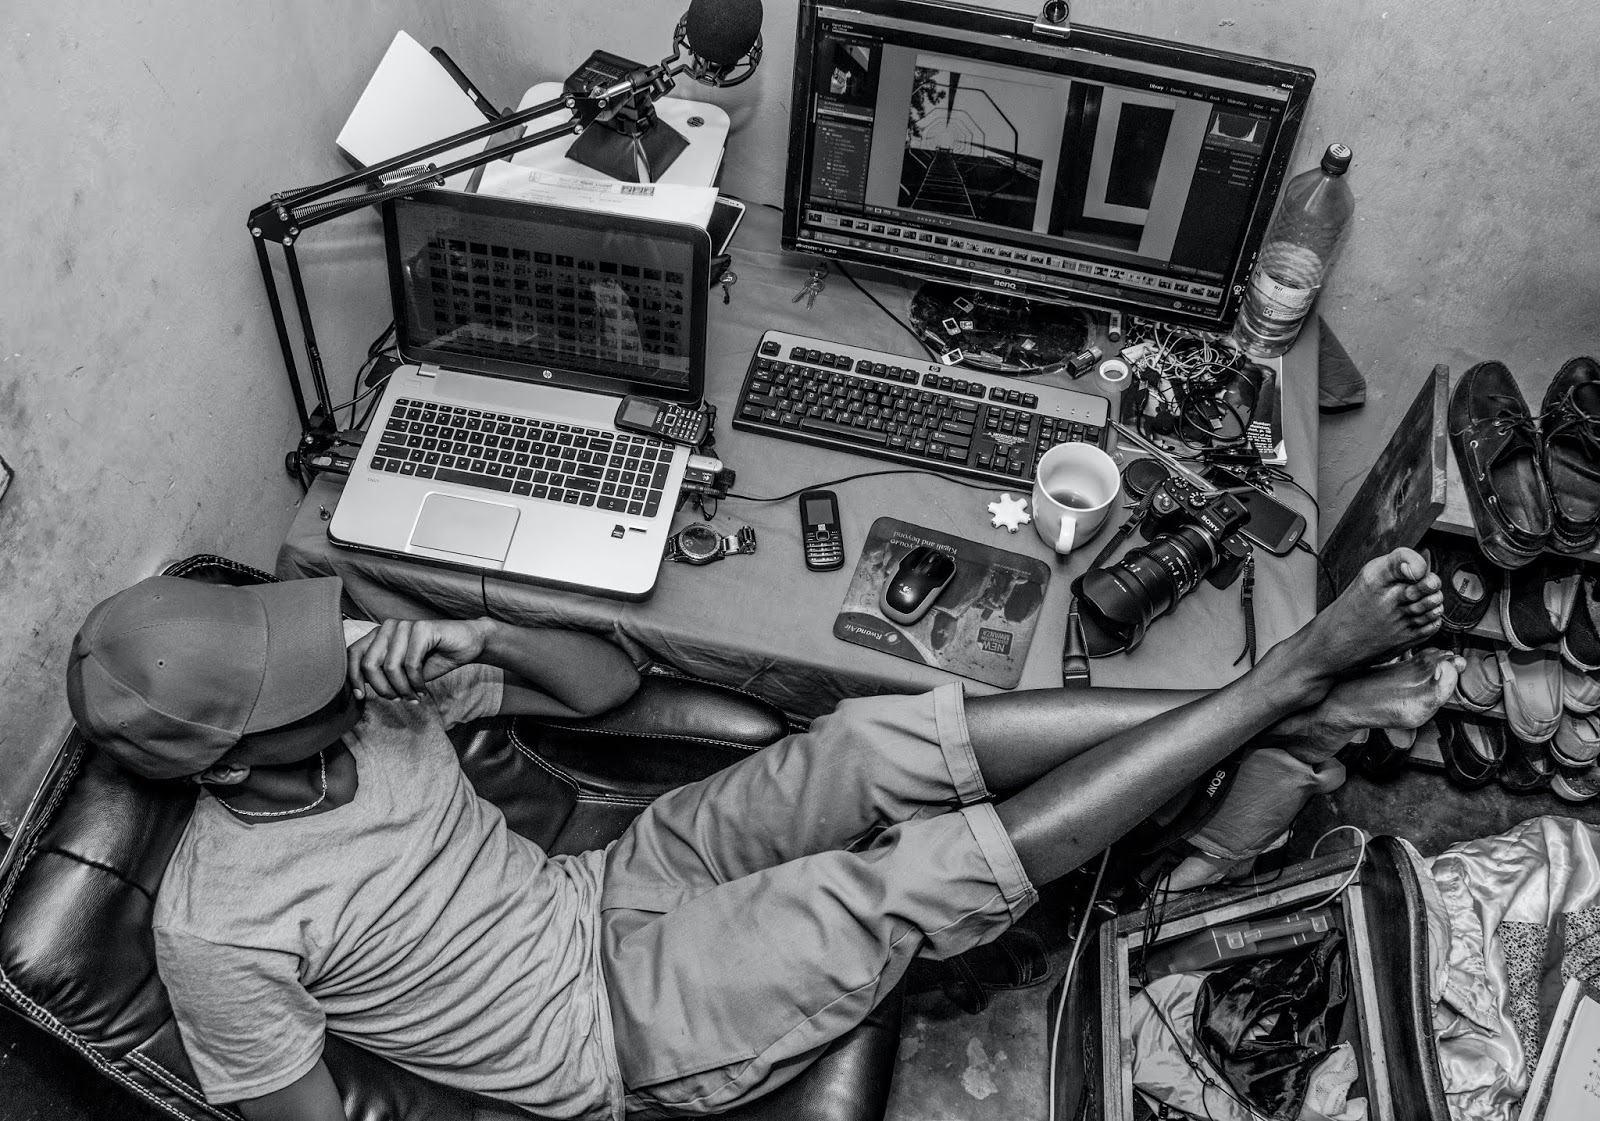 A photographer is editing his work in a small workspace